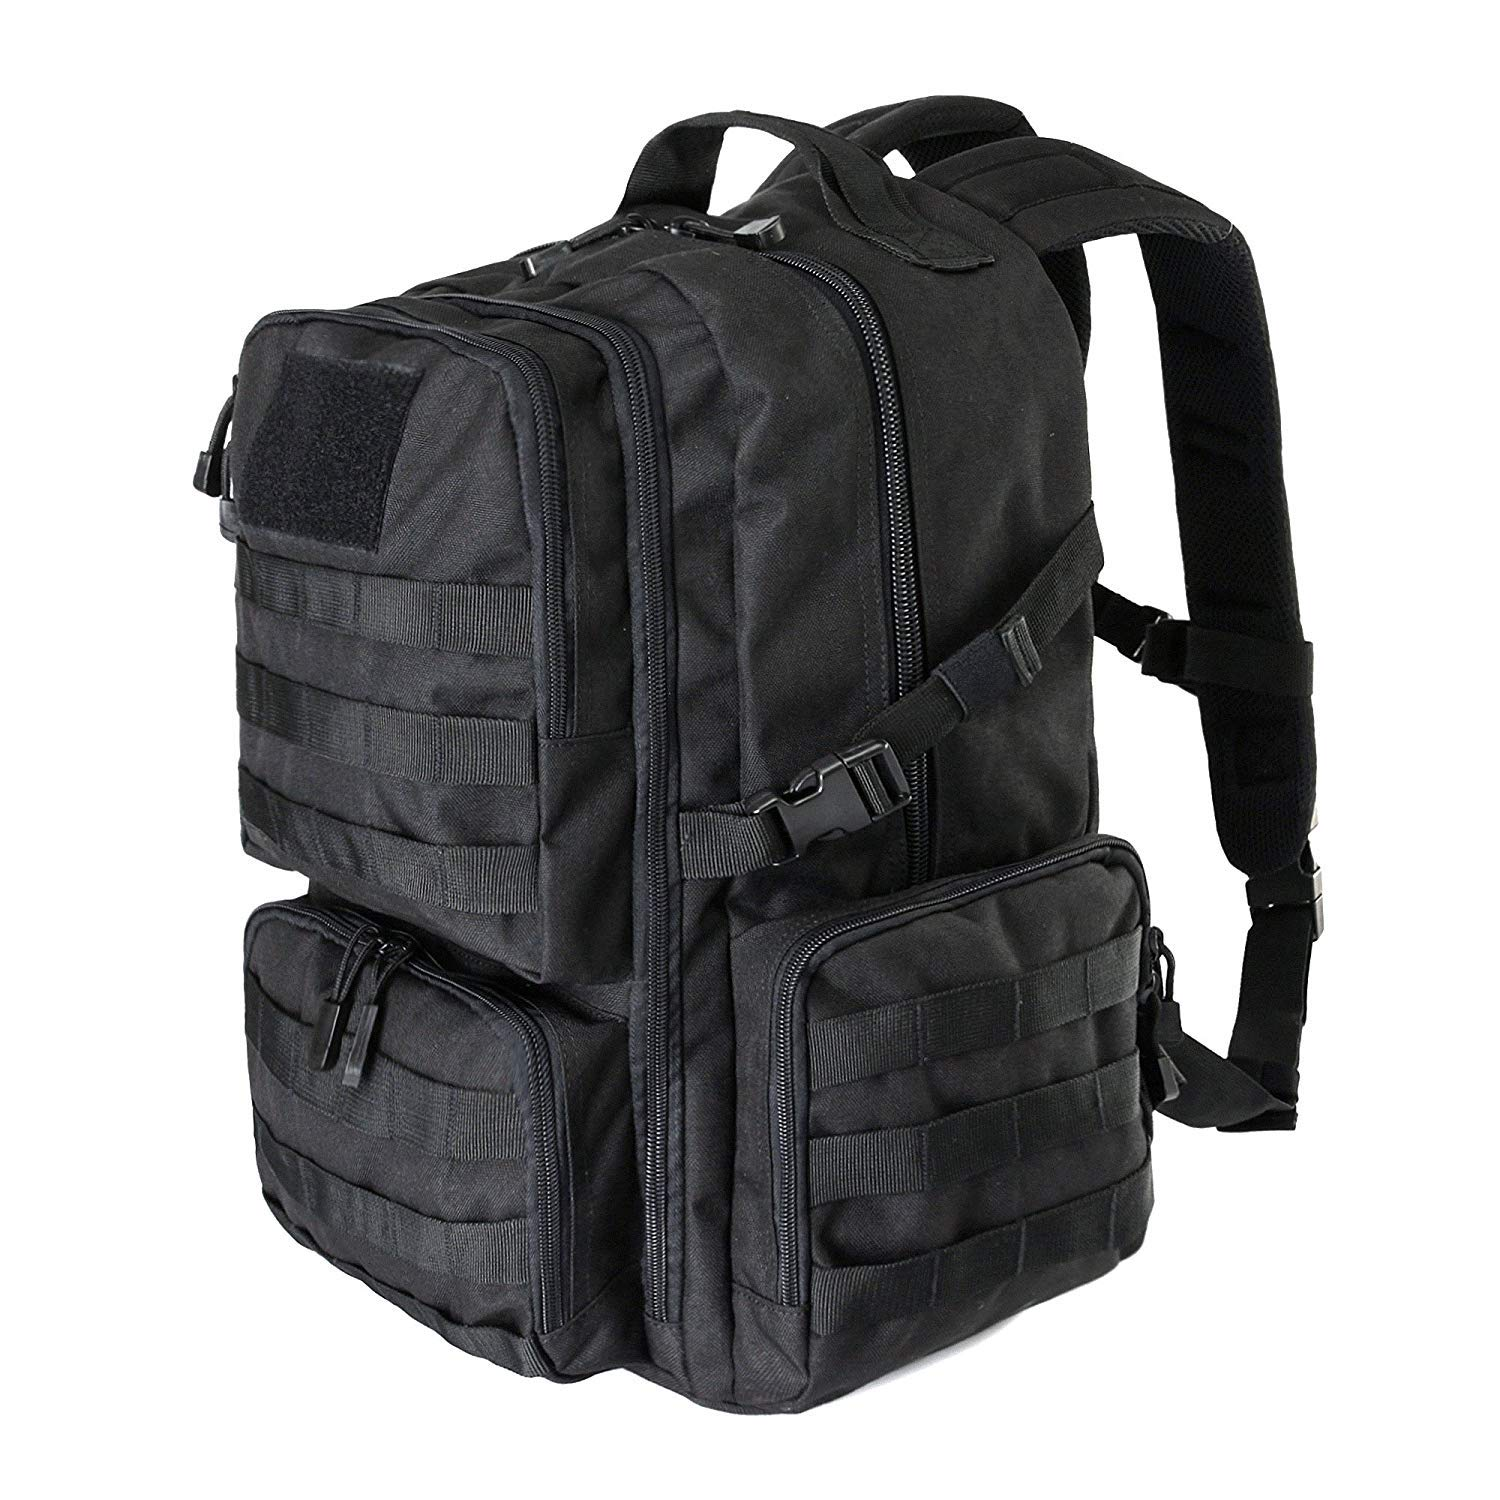 WIDEWAY Military Tactical Backpack 40L Survival Gear Backpacking Large Hydration Molle Bug Out Bag 3 Day Assault Pack Rucksacks Daypack for Outdoor Travel Hunting Camping Hiking Shooting, Black by WIDEWAY